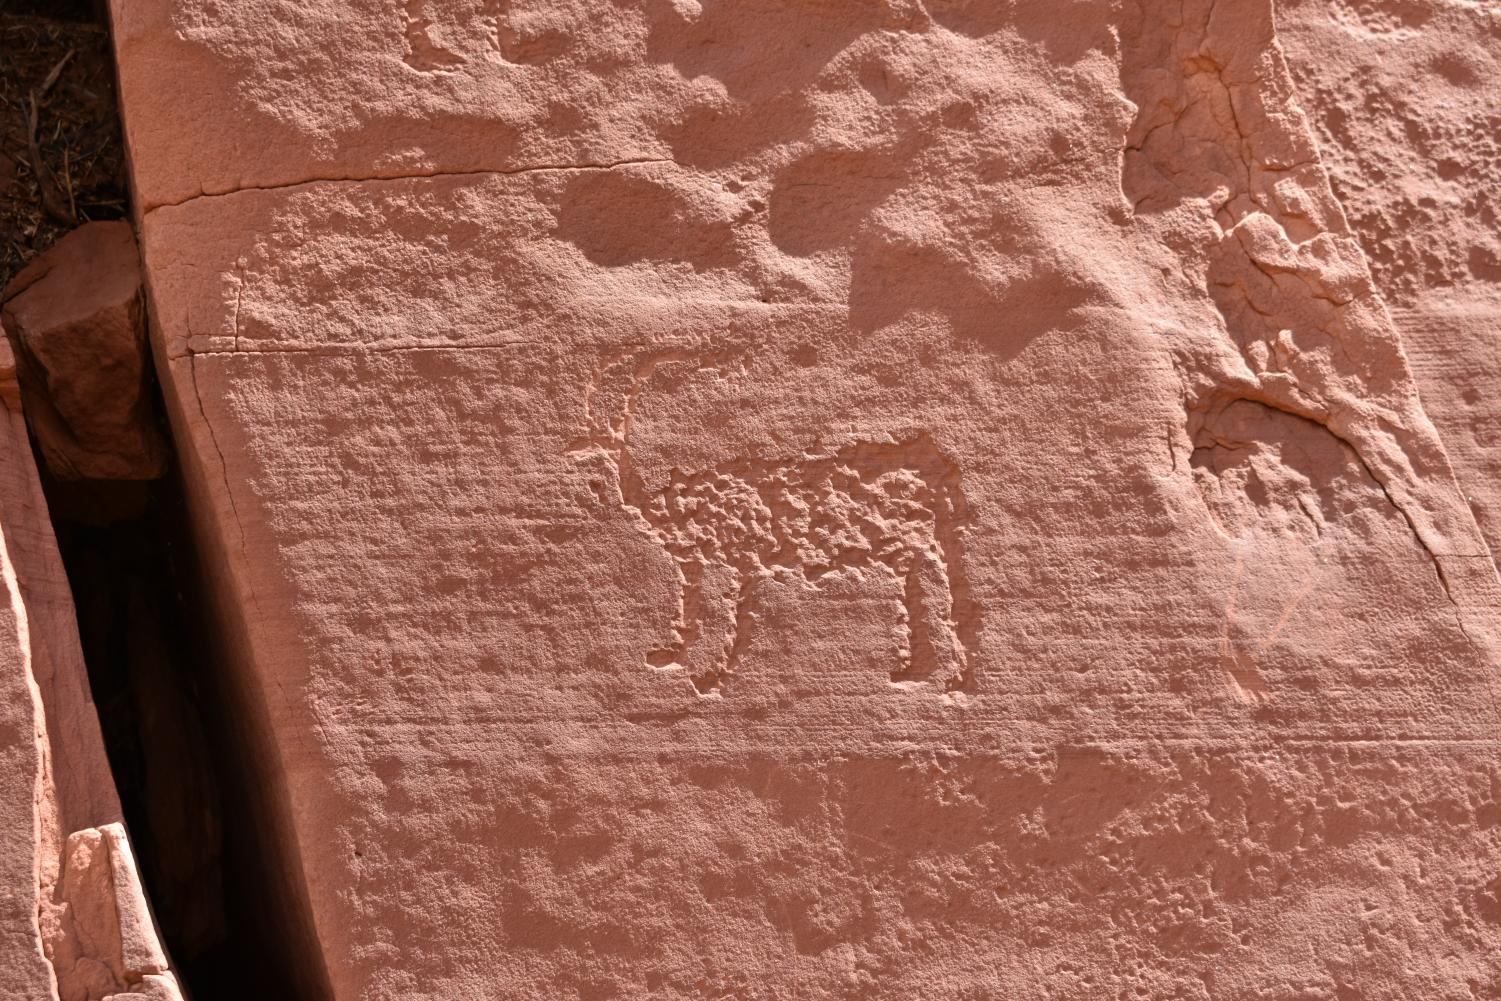 A+petroglyph+of+an+animal+found+in+the+side+of+rock+wall.